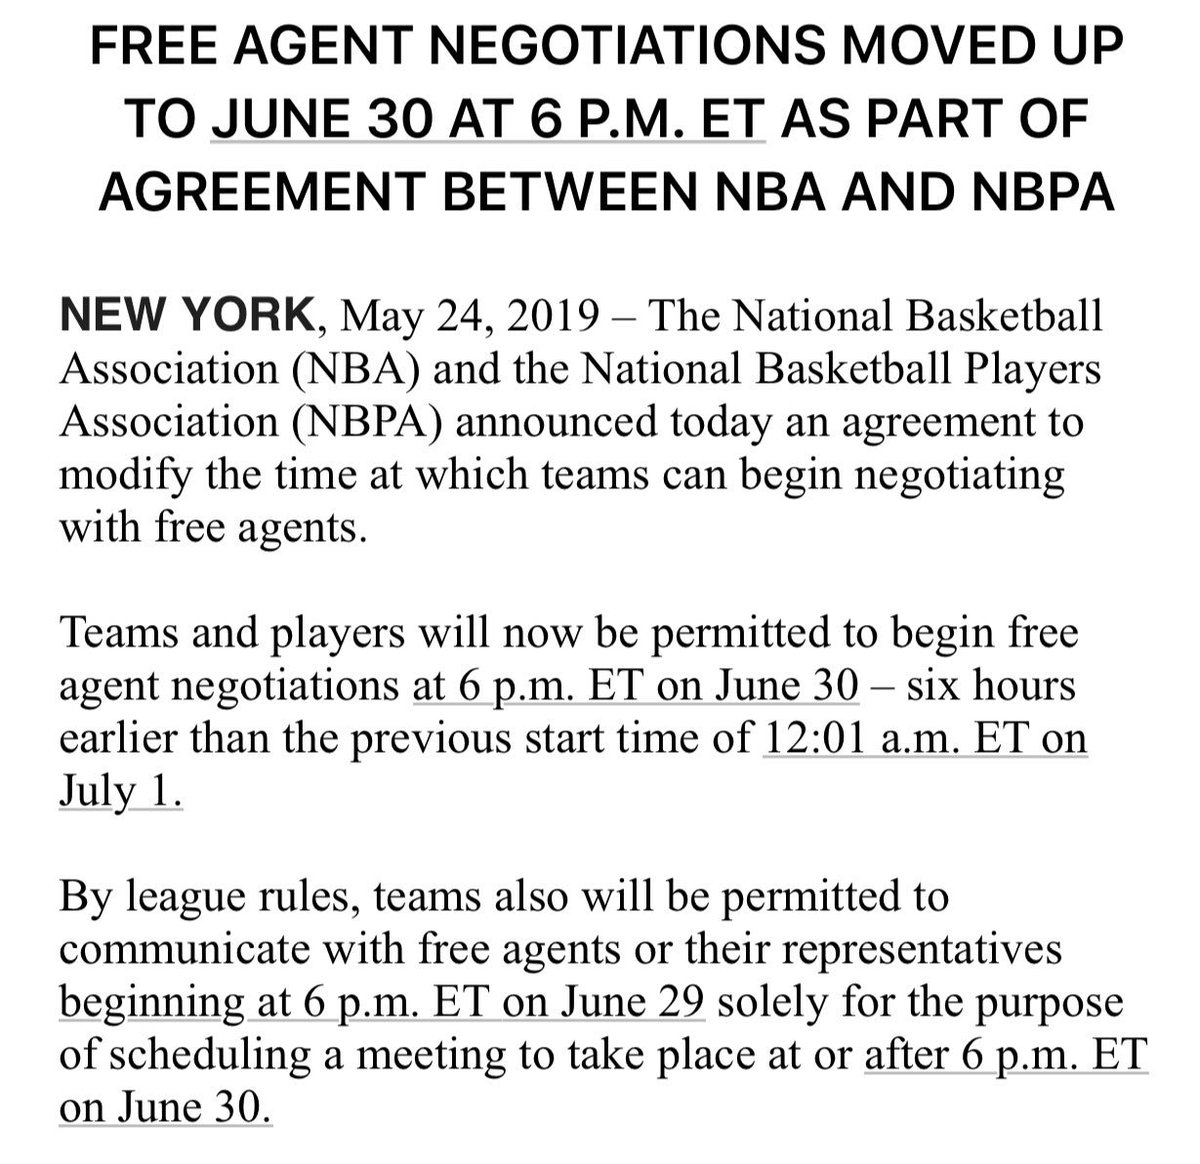 Full announcement from the league on New Free Agency ... which includes permission for teams to set up free agent meetings starting at 6 PM ET on June 29